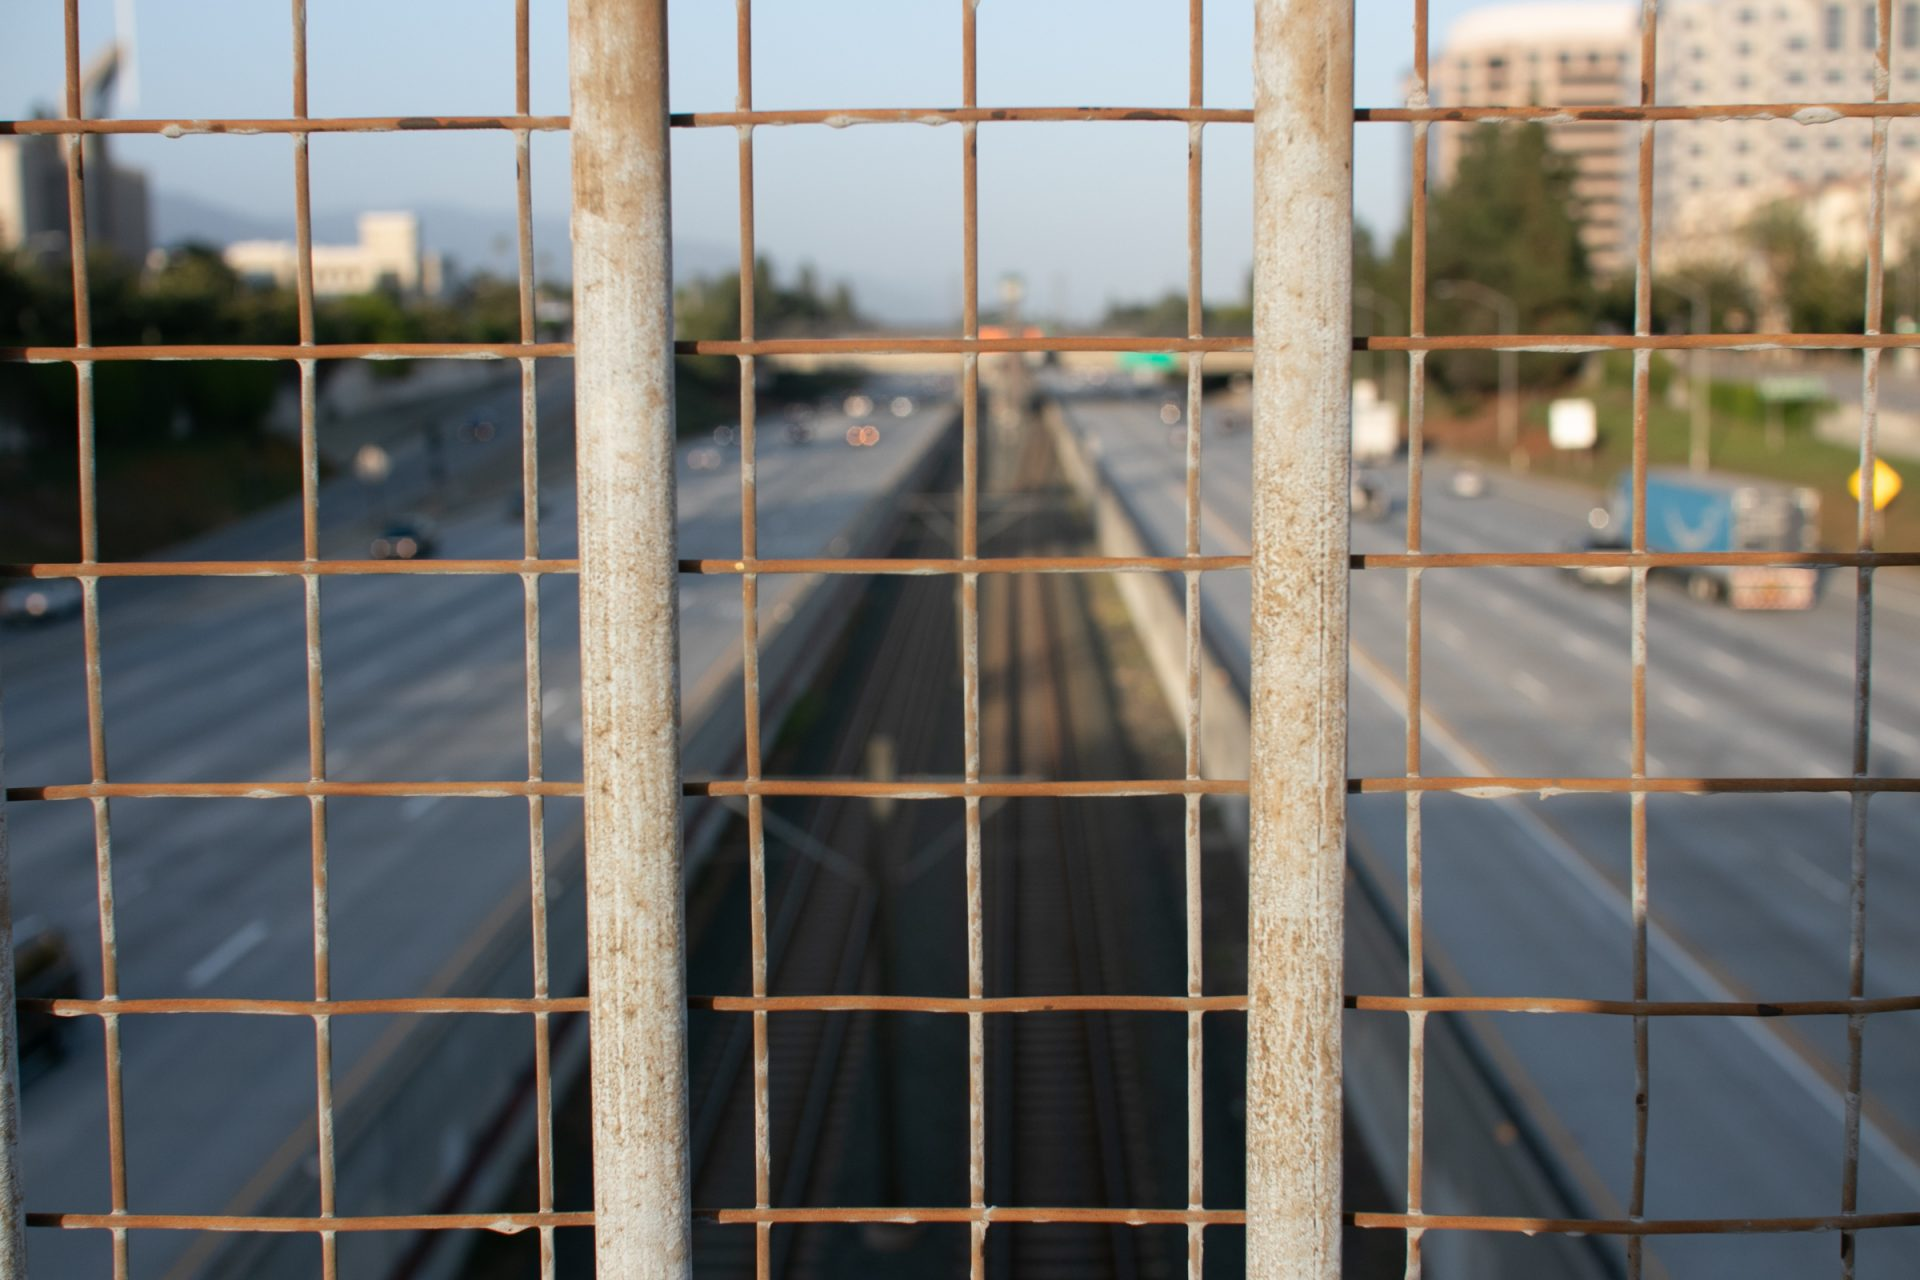 Blurry Divided Highway Beyond Wire Mesh Fence